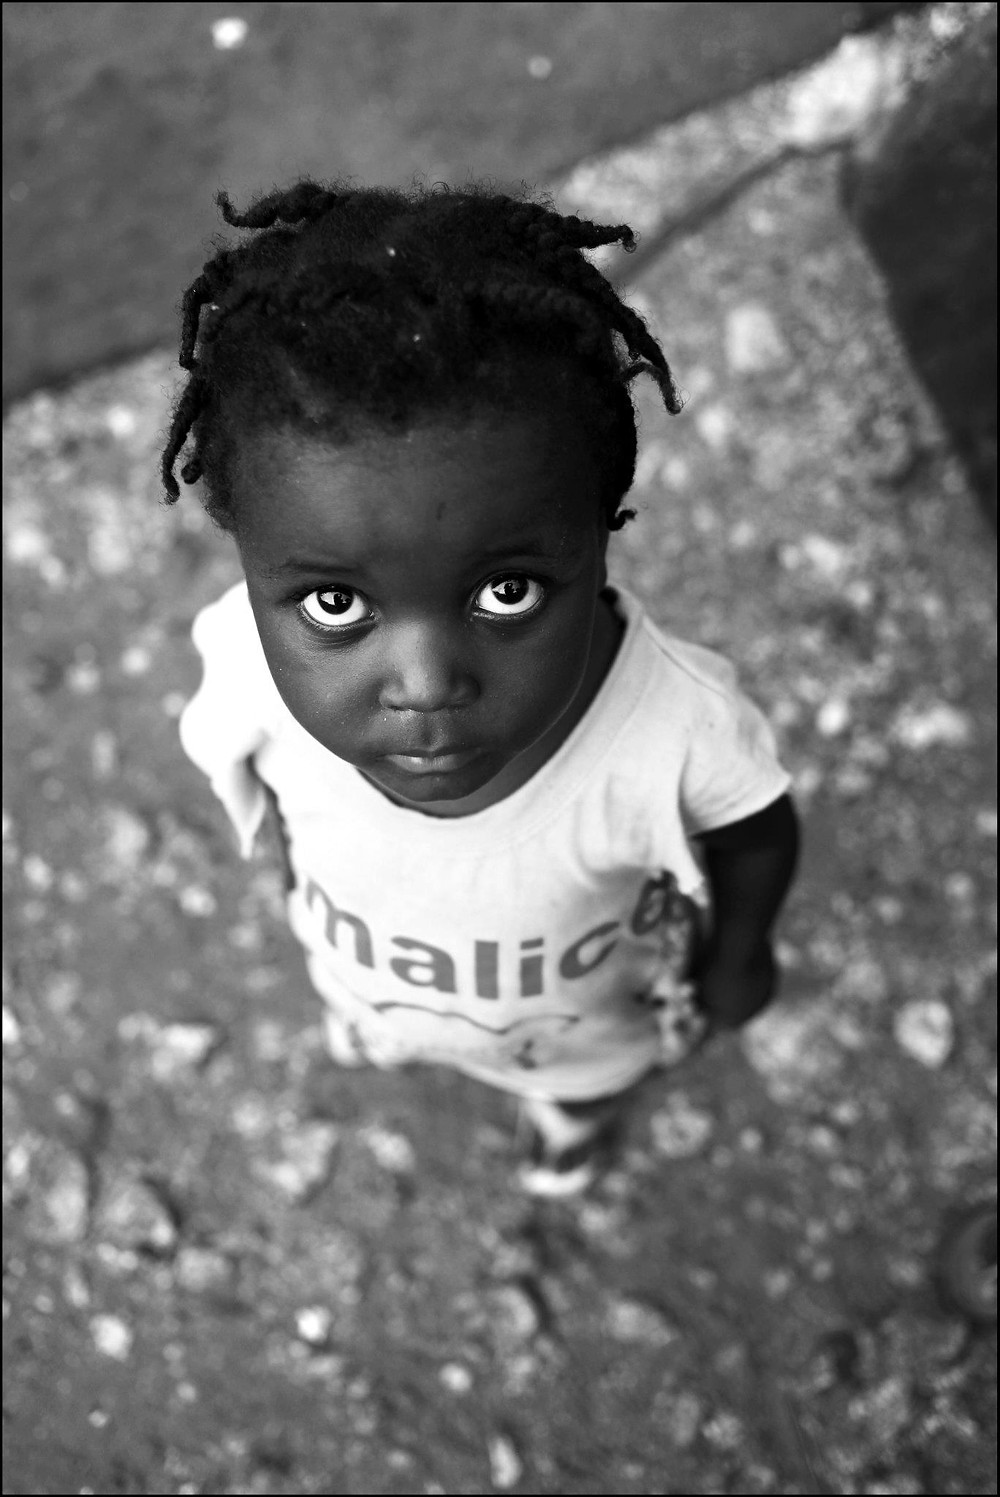 The Heart Fund - Haiti children with heart defects